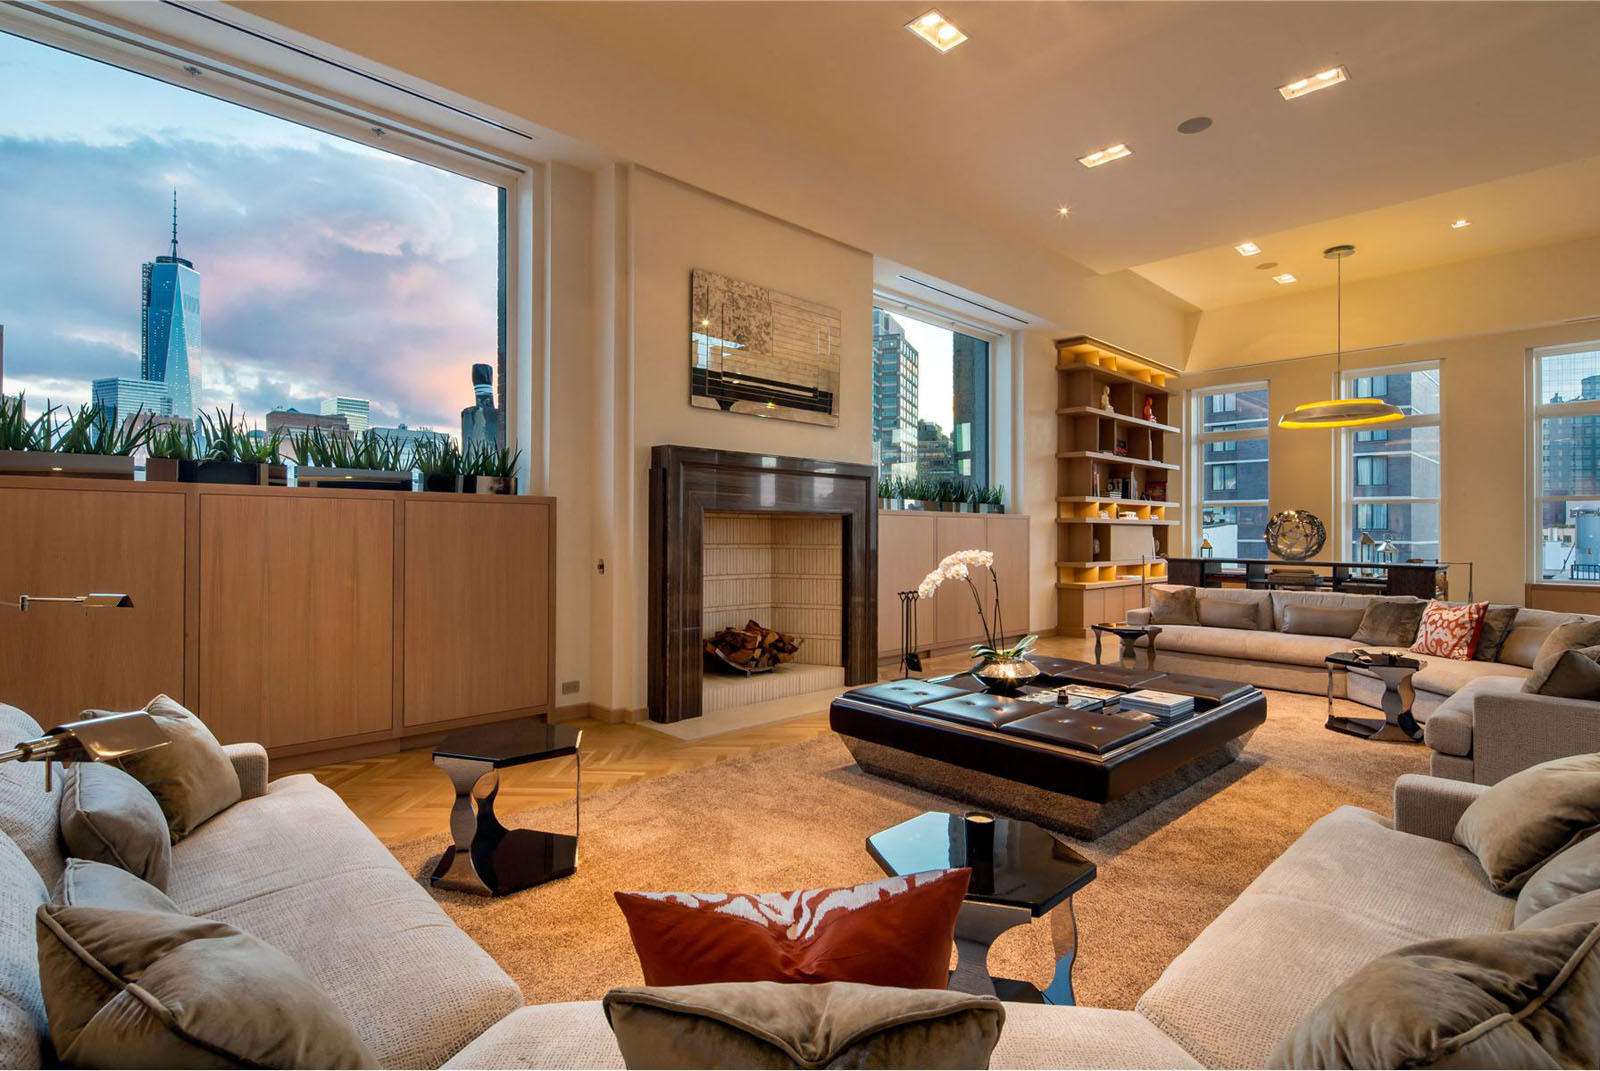 downtown manhattan penthouse apartment with view of freedom tower - Manhattan Penthouse Apartments